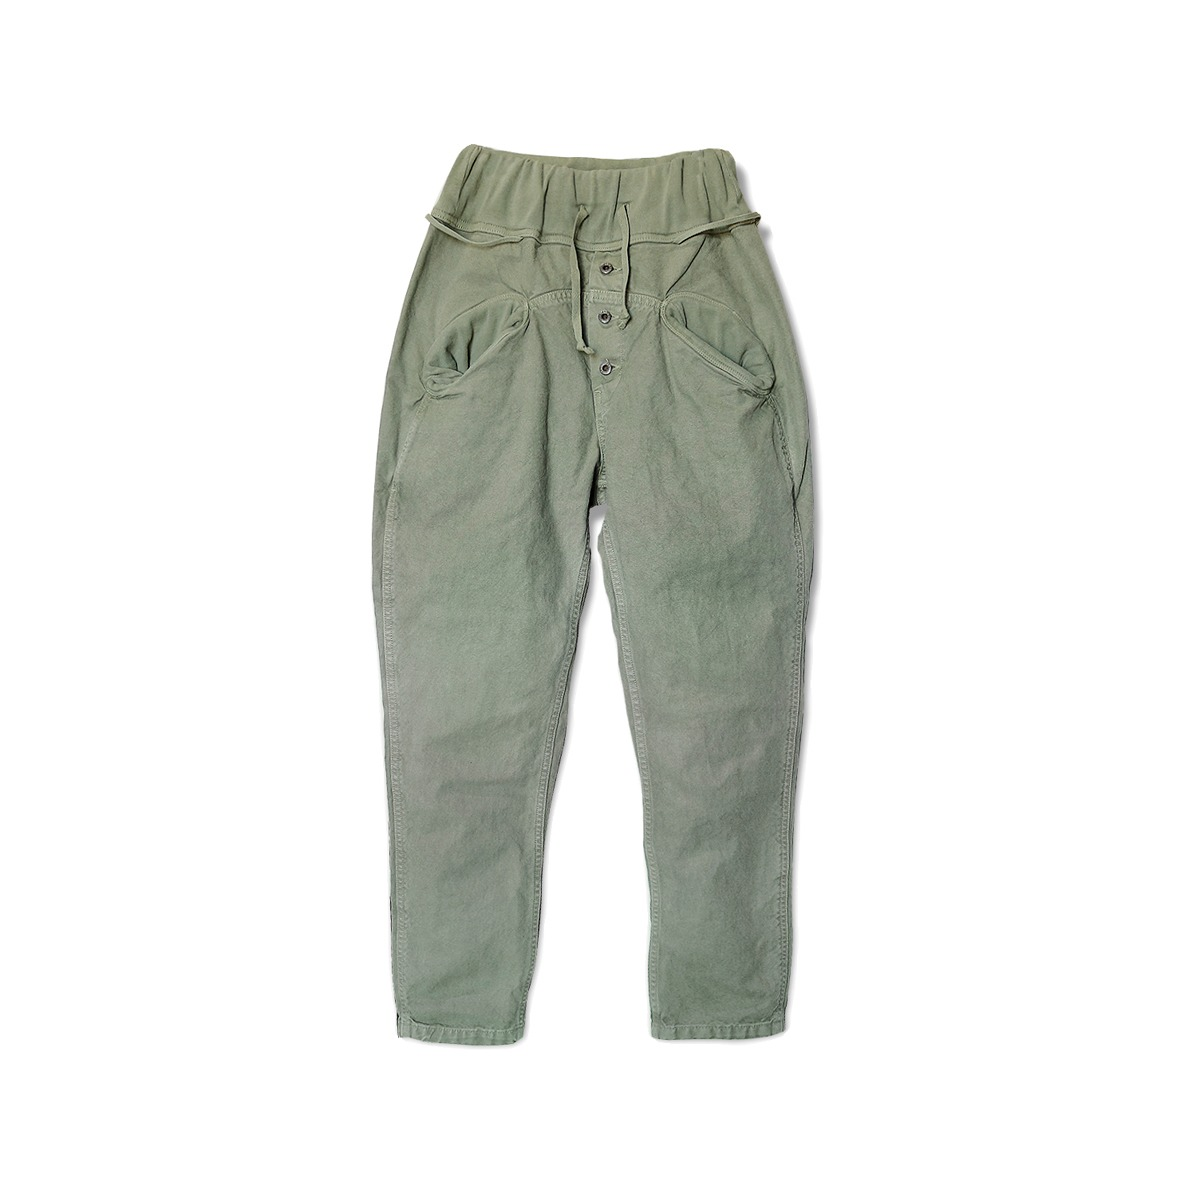 [KAPITAL] CANVAS SAROUEL NOUVELLE PANTS 'KHAKI'